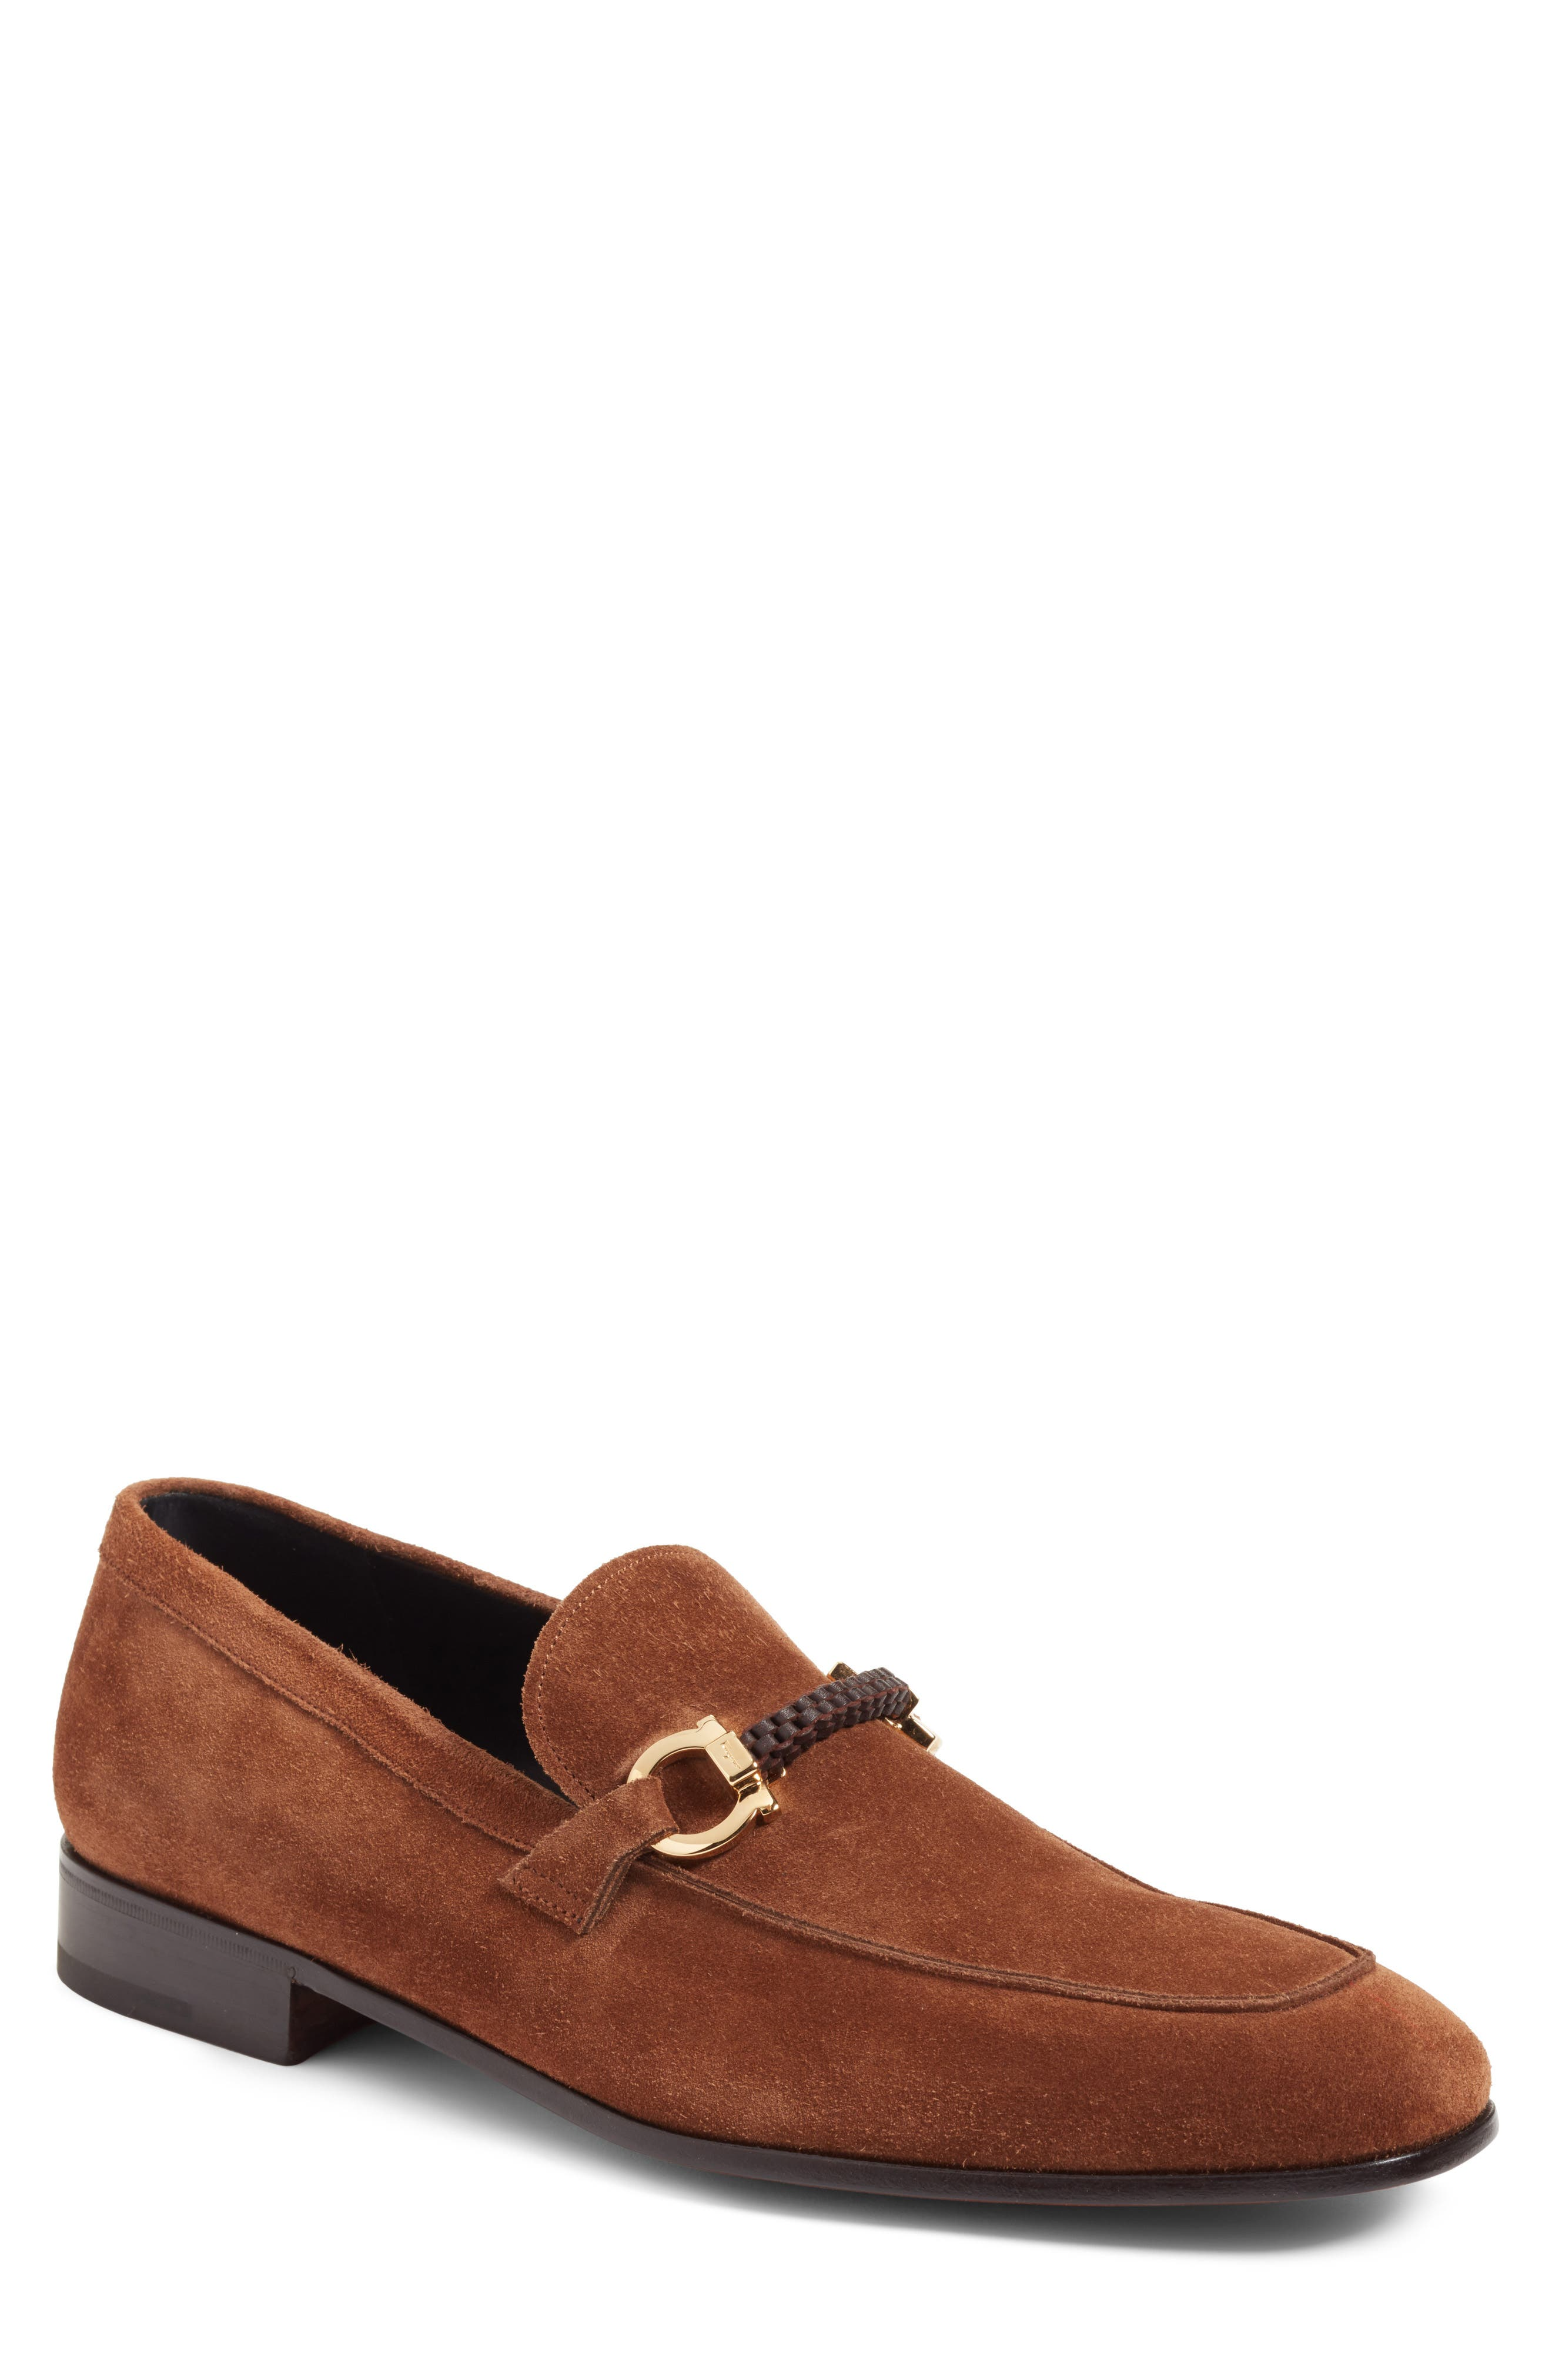 Cross Bit Loafer,                             Main thumbnail 1, color,                             Castoro